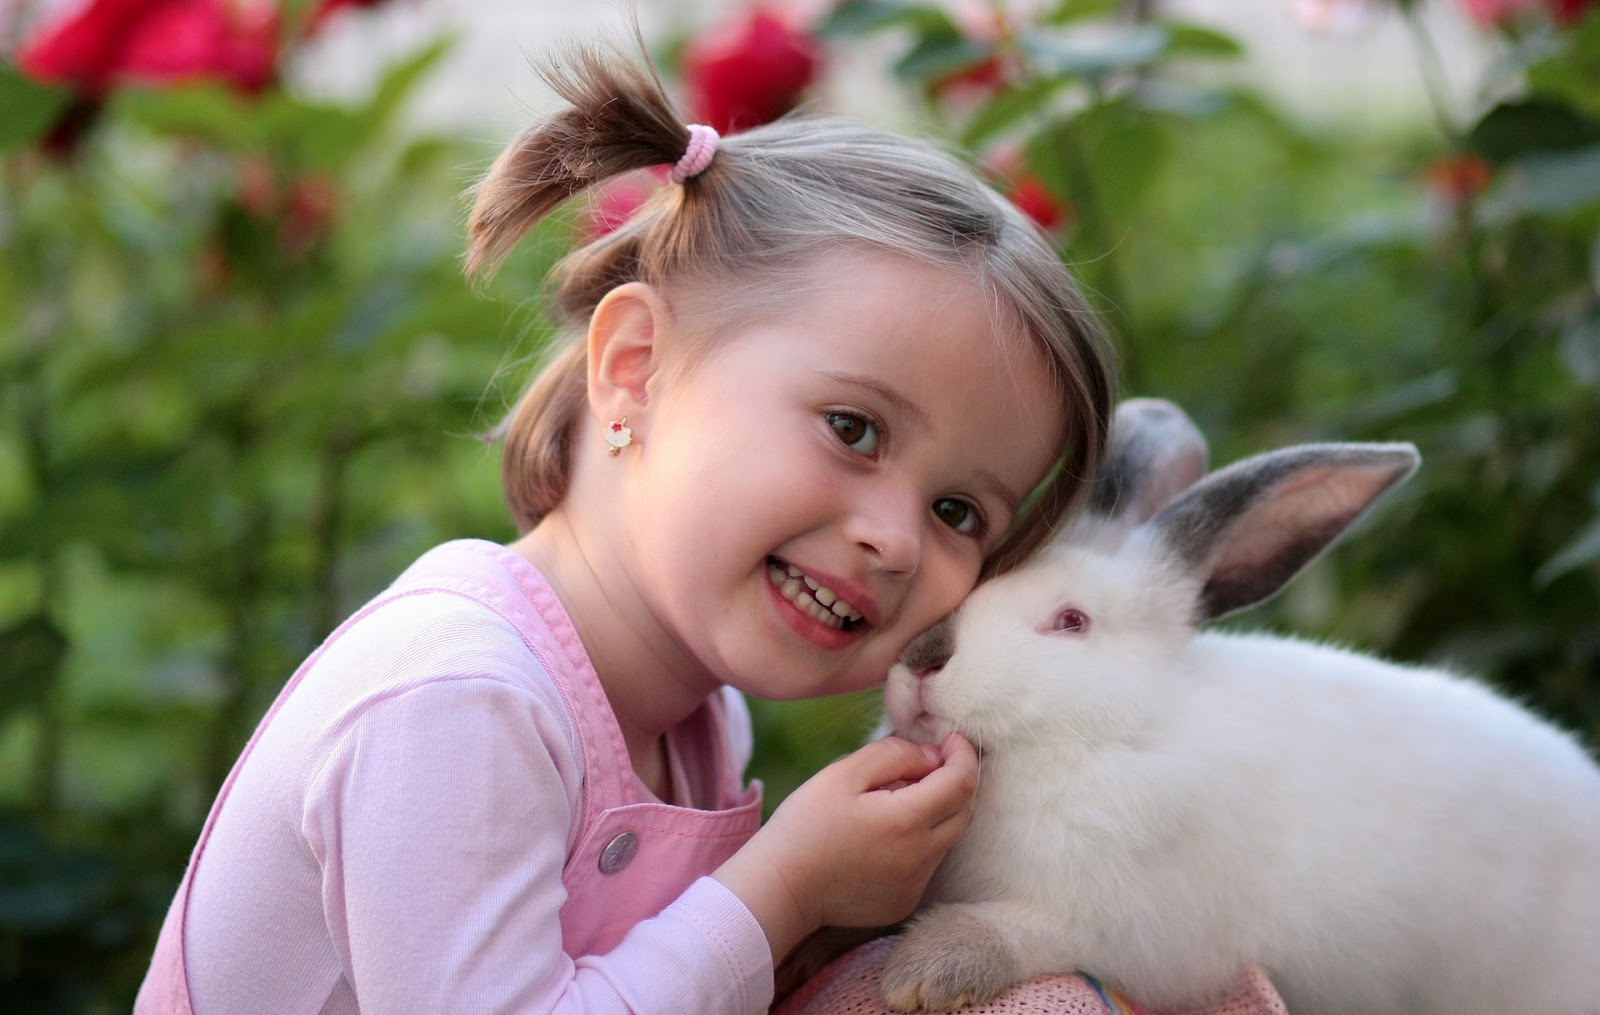 little girl petting rabbit outside